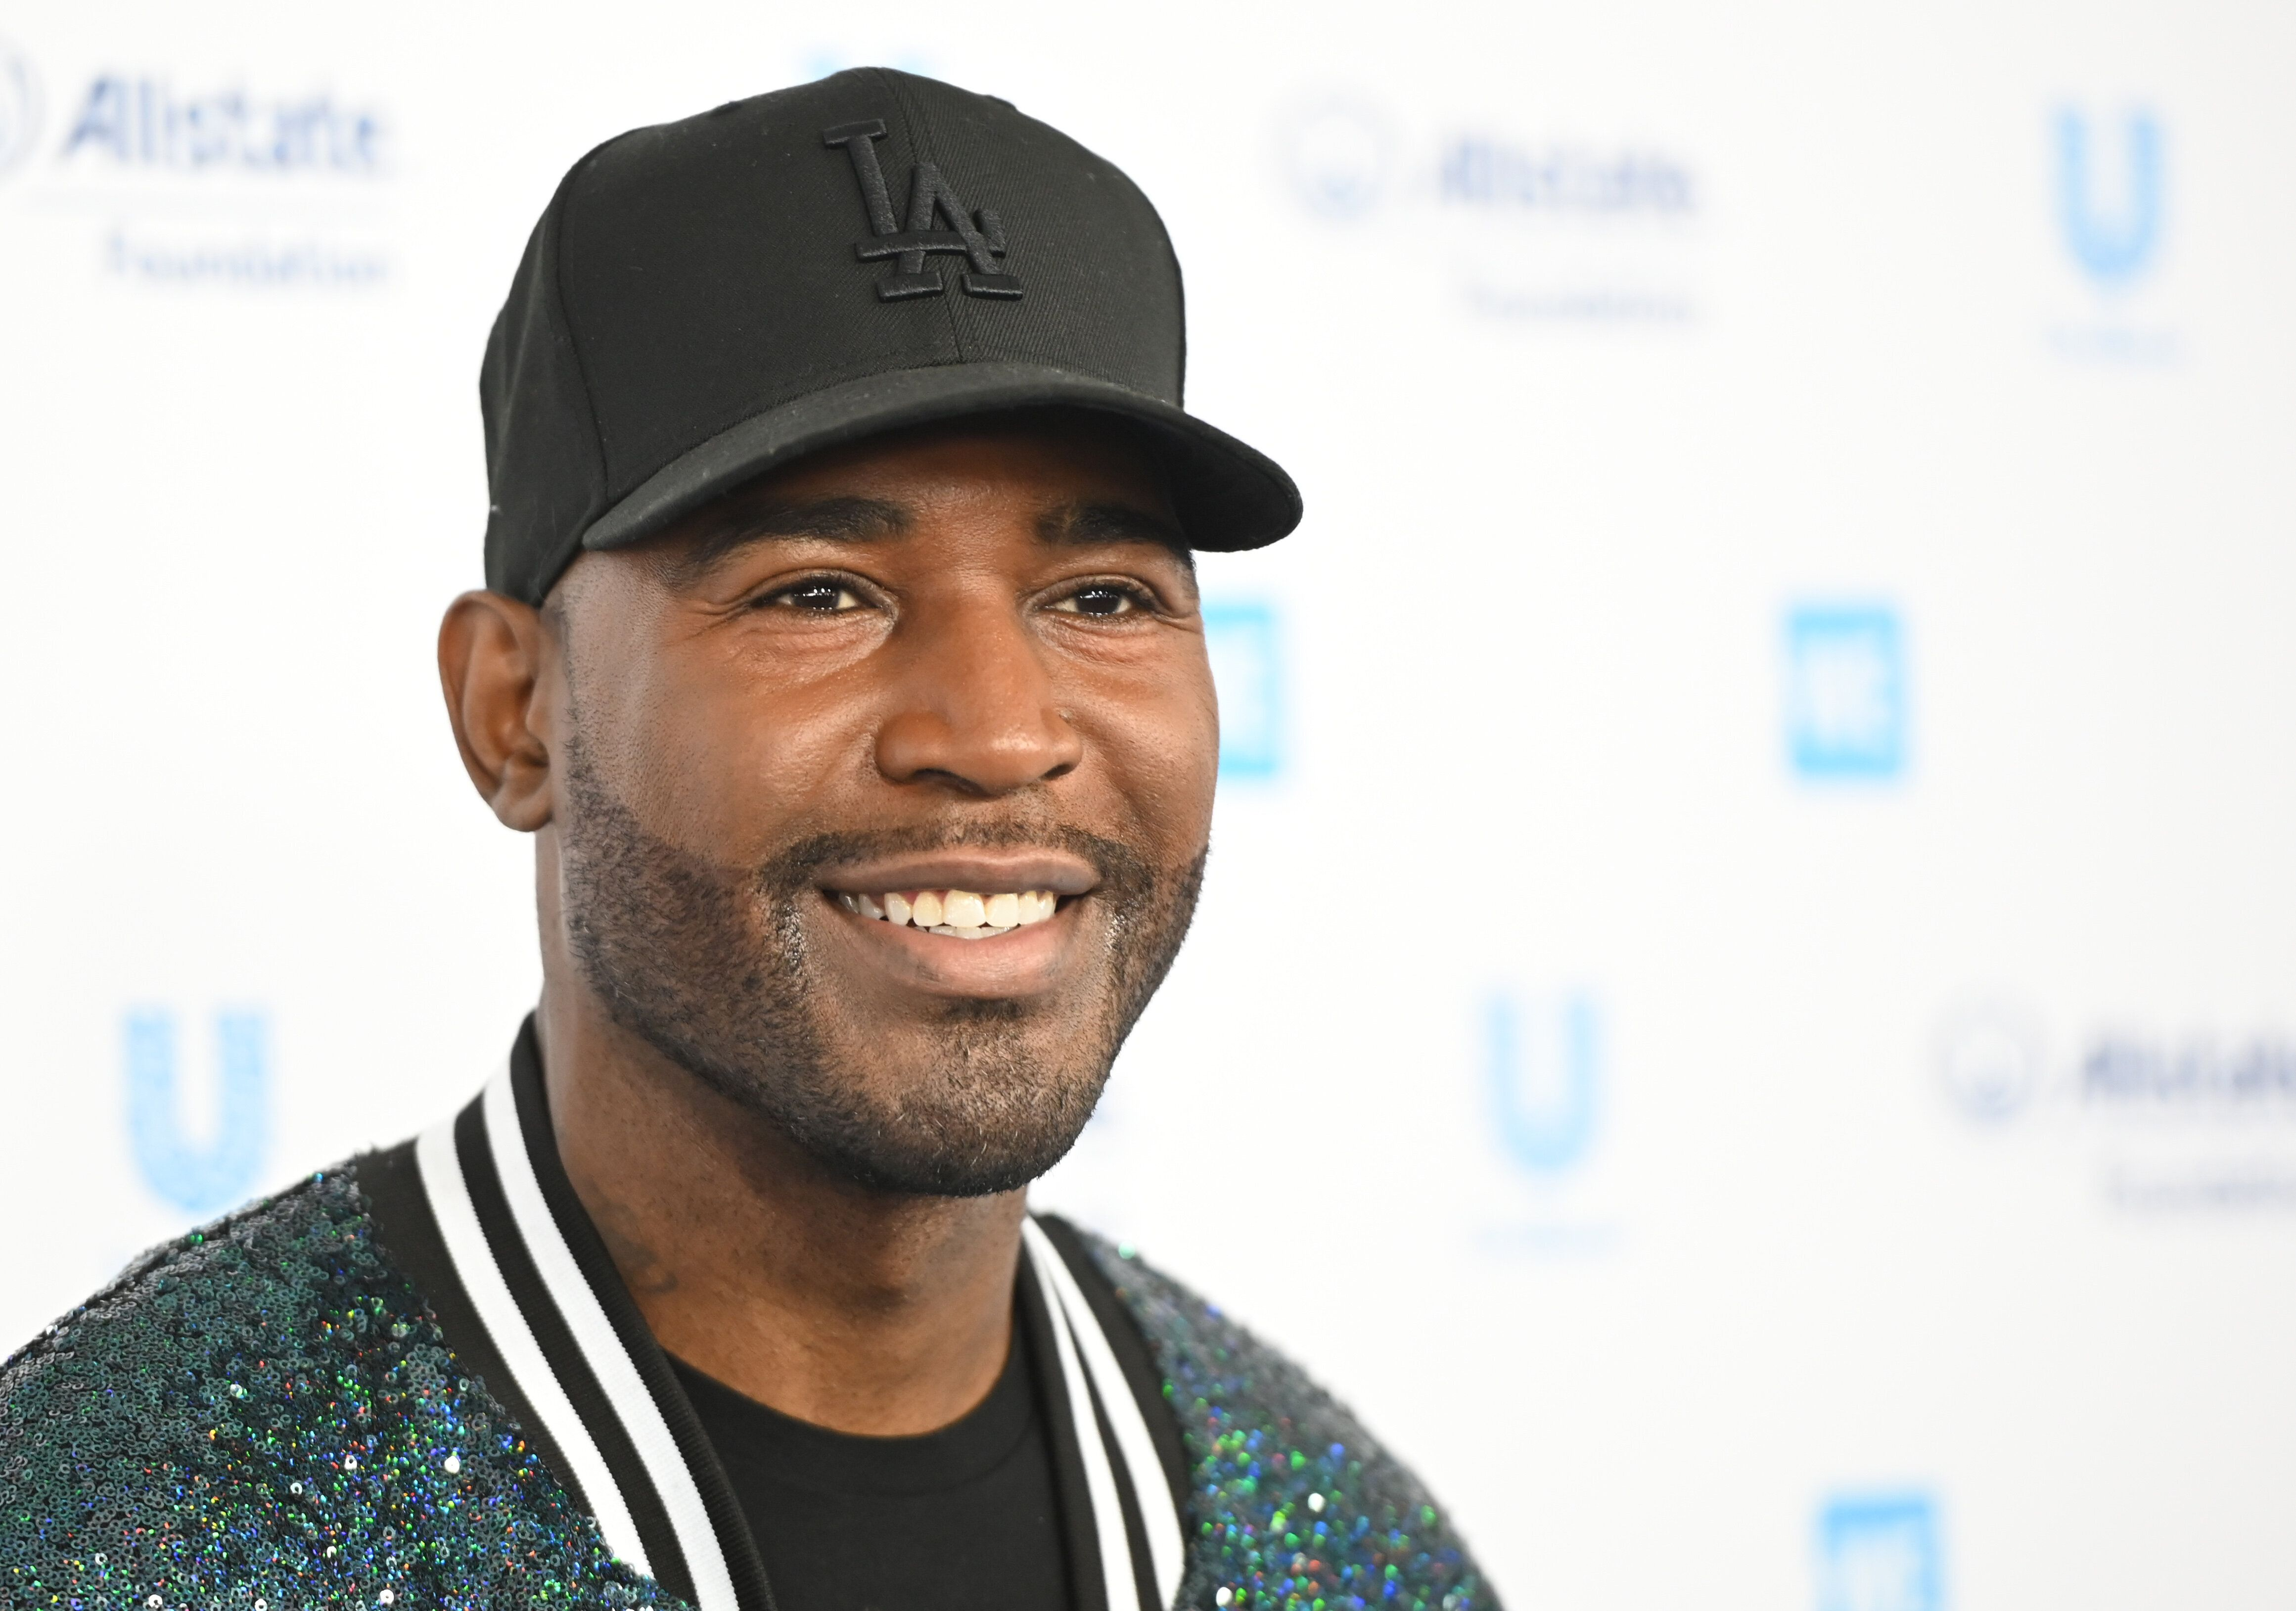 TV personality Karamo Brown arrives for WE Day California at the Forum in Inglewood, California on April 25, 2019. - WE Day is the worlds largest youth empowerment event combining the energy of a live concert with the inspiration of extraordinary stories of leadership and change. WE Day California will bring together world-renowned speakers and award-winning performers to celebrate the tens of thousands of young people from across California who have made a difference in their community. (Photo by Robyn BECK / AFP)        (Photo credit should read ROBYN BECK/AFP/Getty Images)